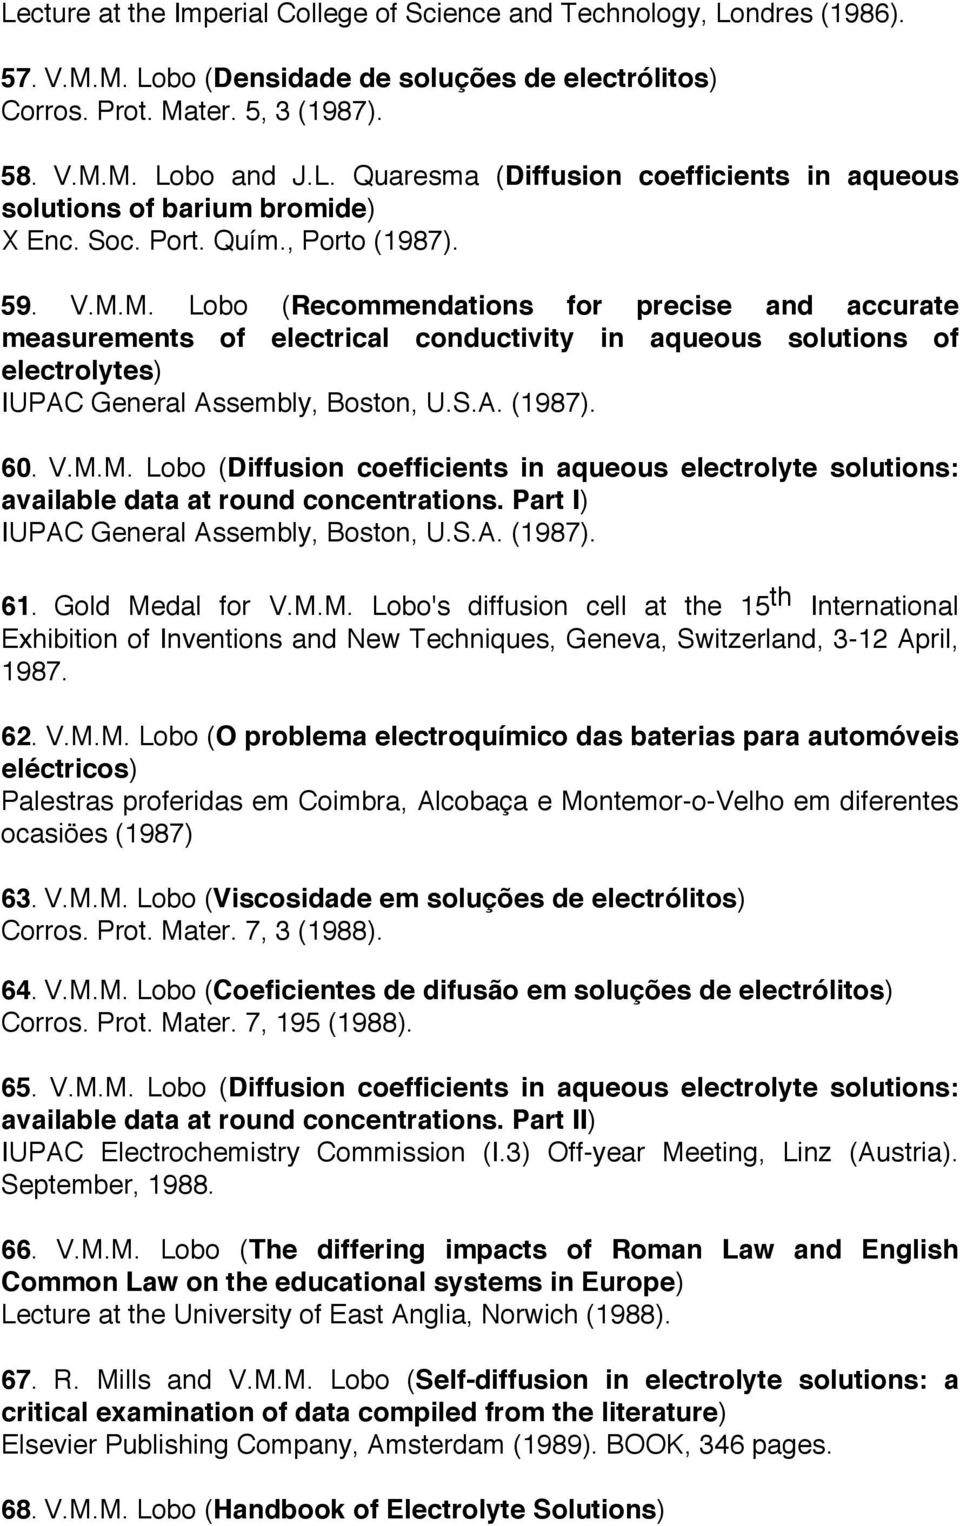 S.A. (1987). 60. V.M.M. Lobo (Diffusion coefficients in aqueous electrolyte solutions: available data at round concentrations. Part I) IUPAC General Assembly, Boston, U.S.A. (1987). 61.